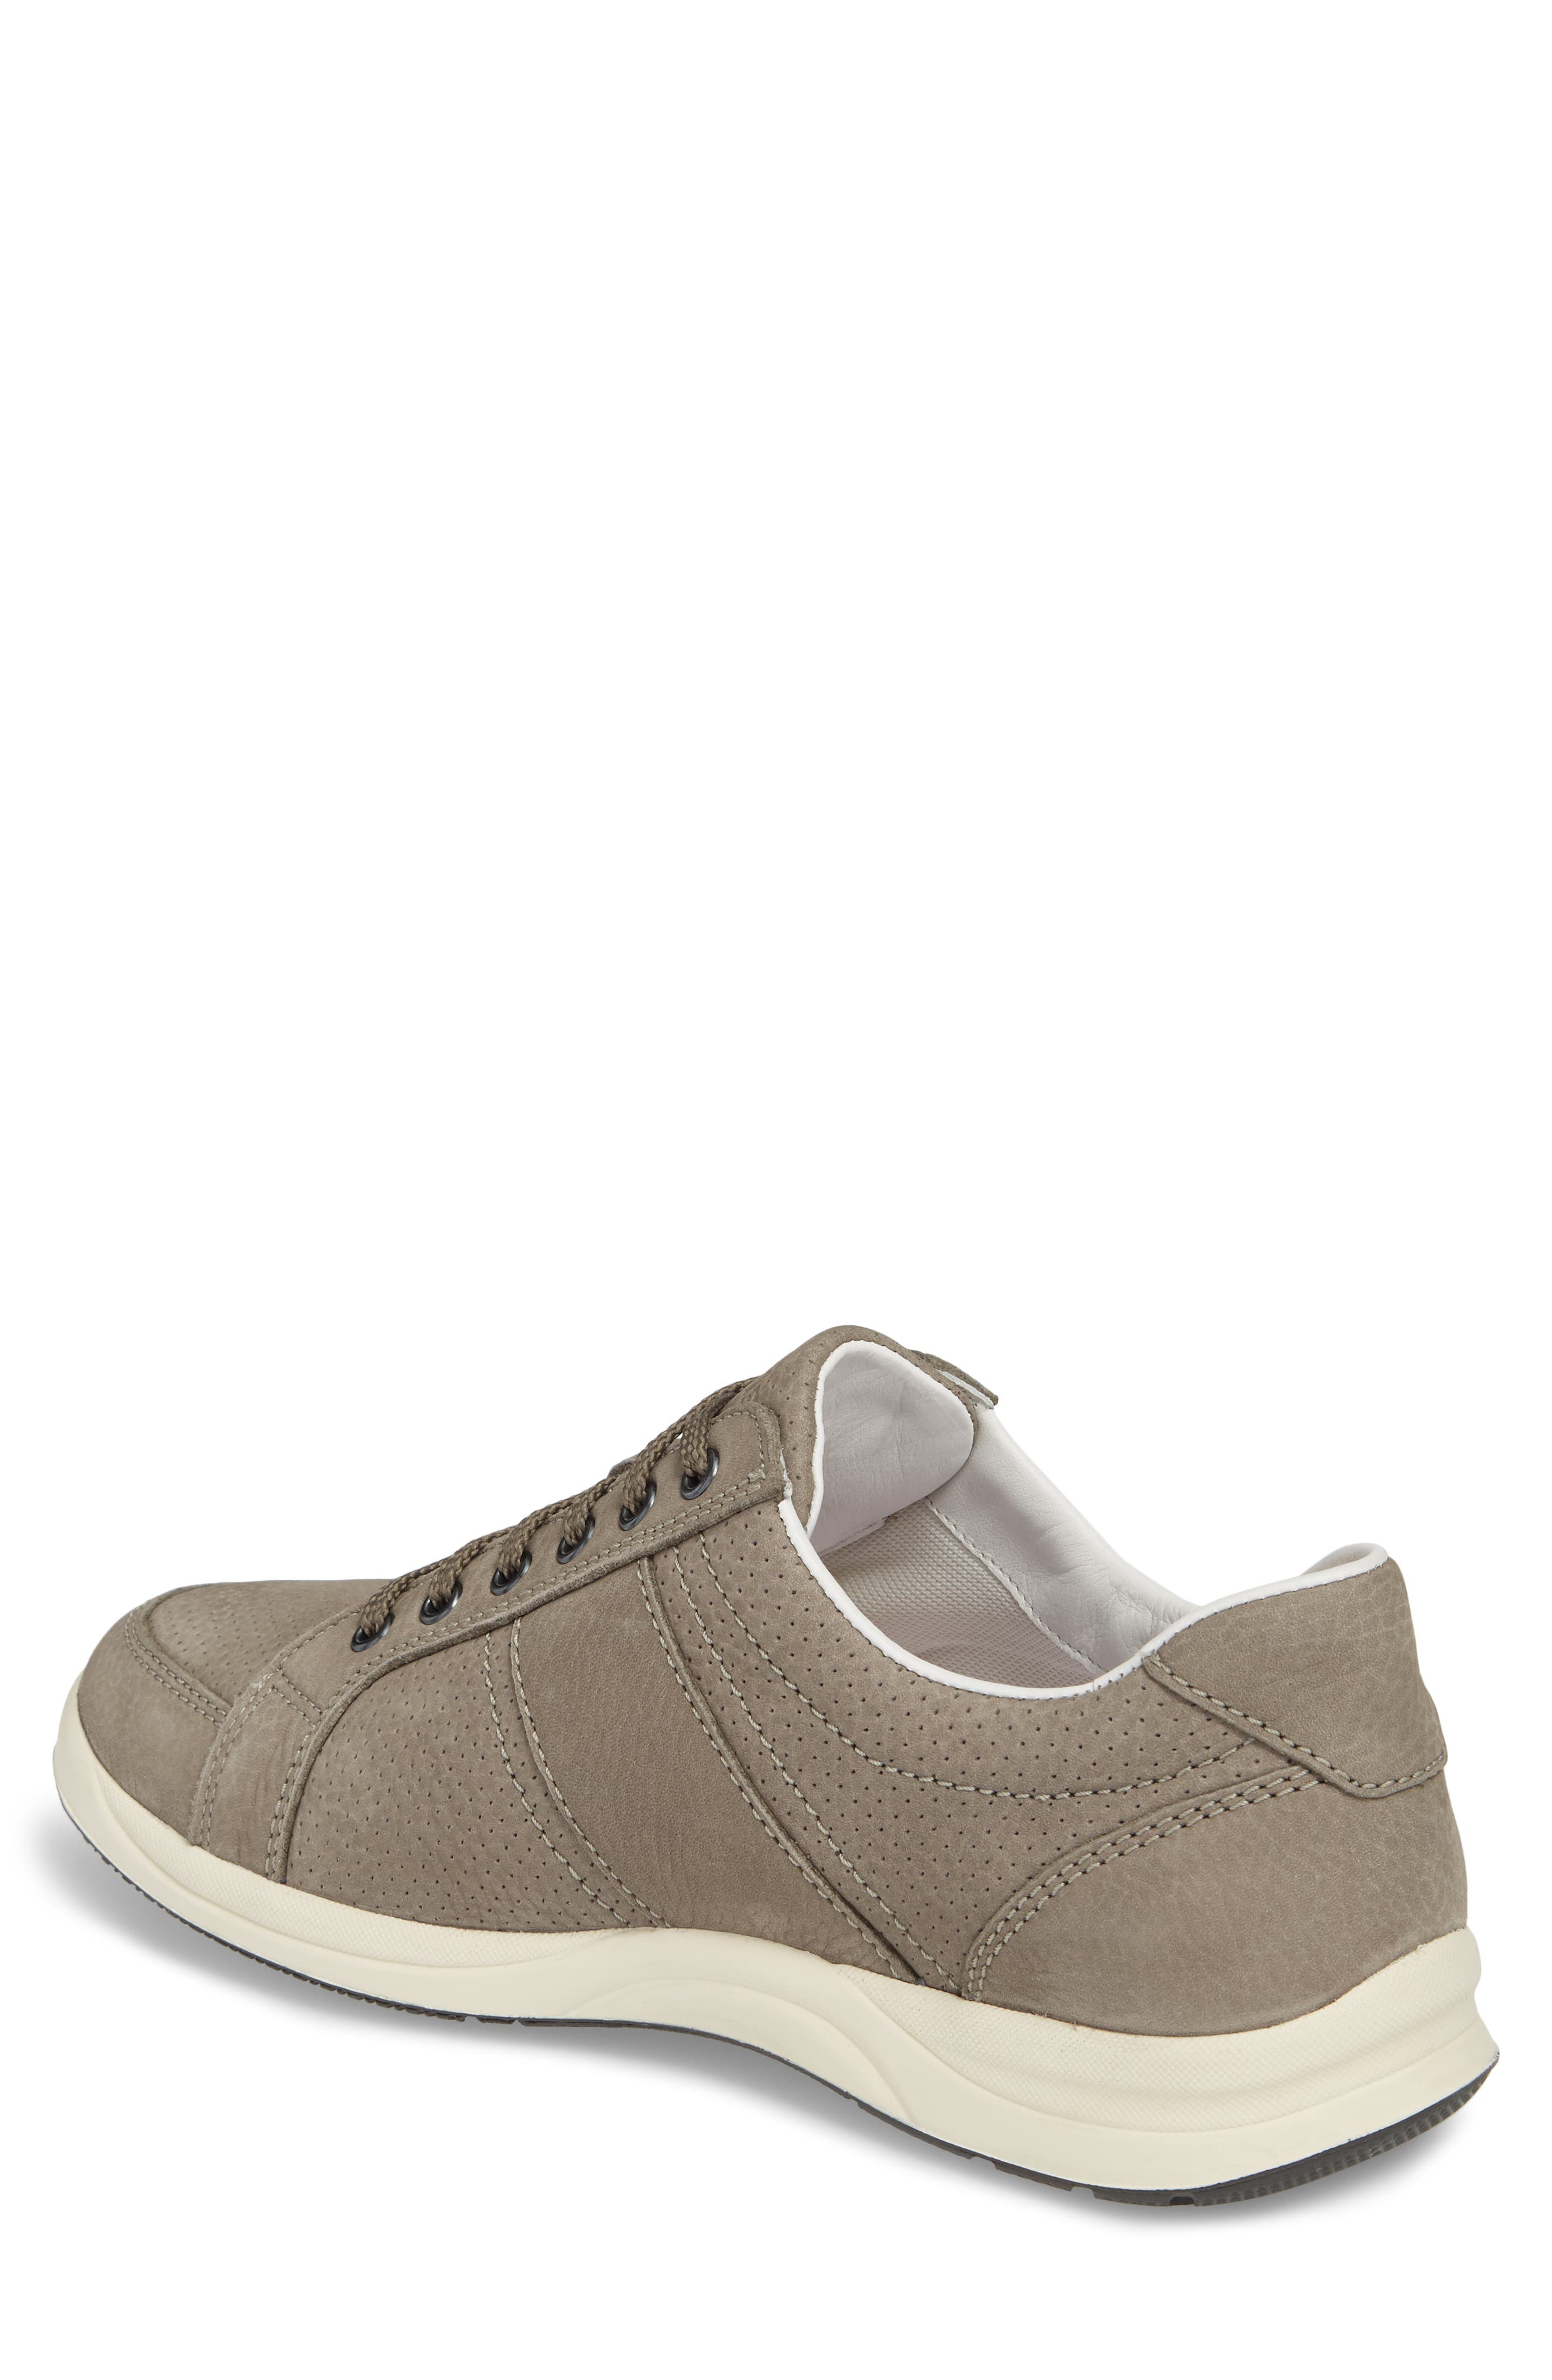 MEPHISTO, 'Hero' Perforated Sneaker, Alternate thumbnail 2, color, GREY LEATHER